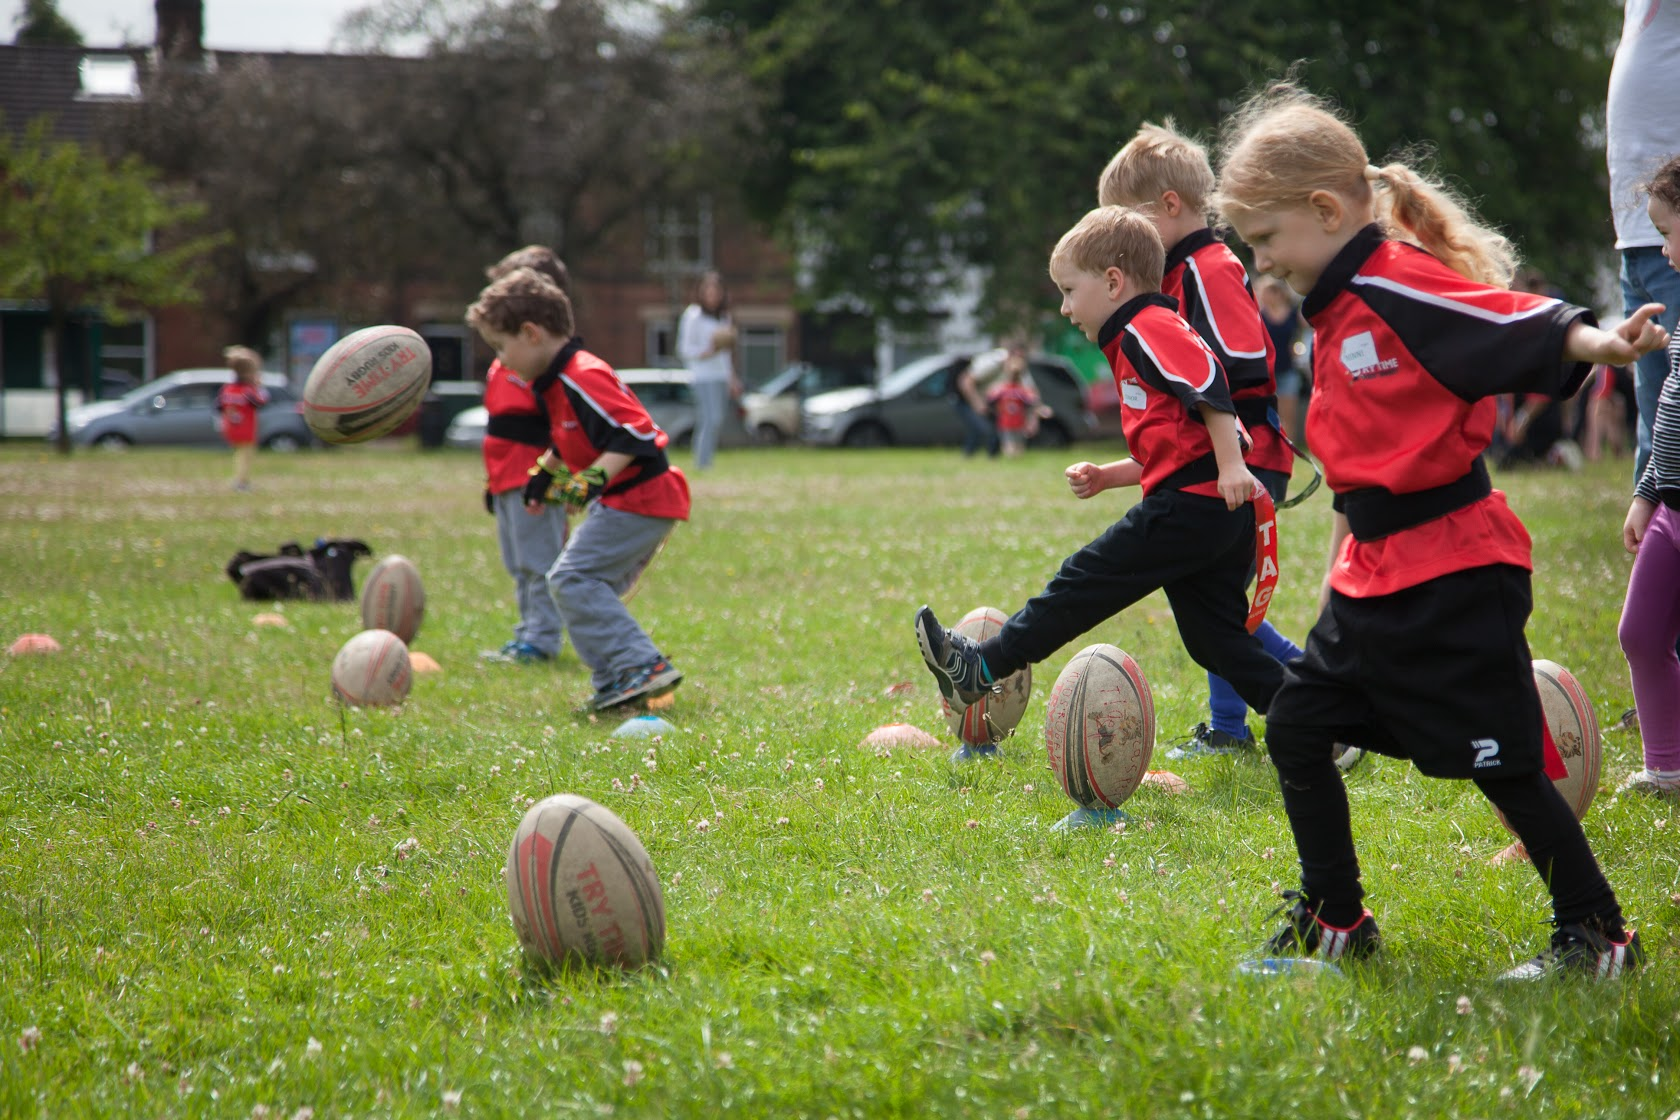 rugby for 3 year olds, rugby for 4 year olds